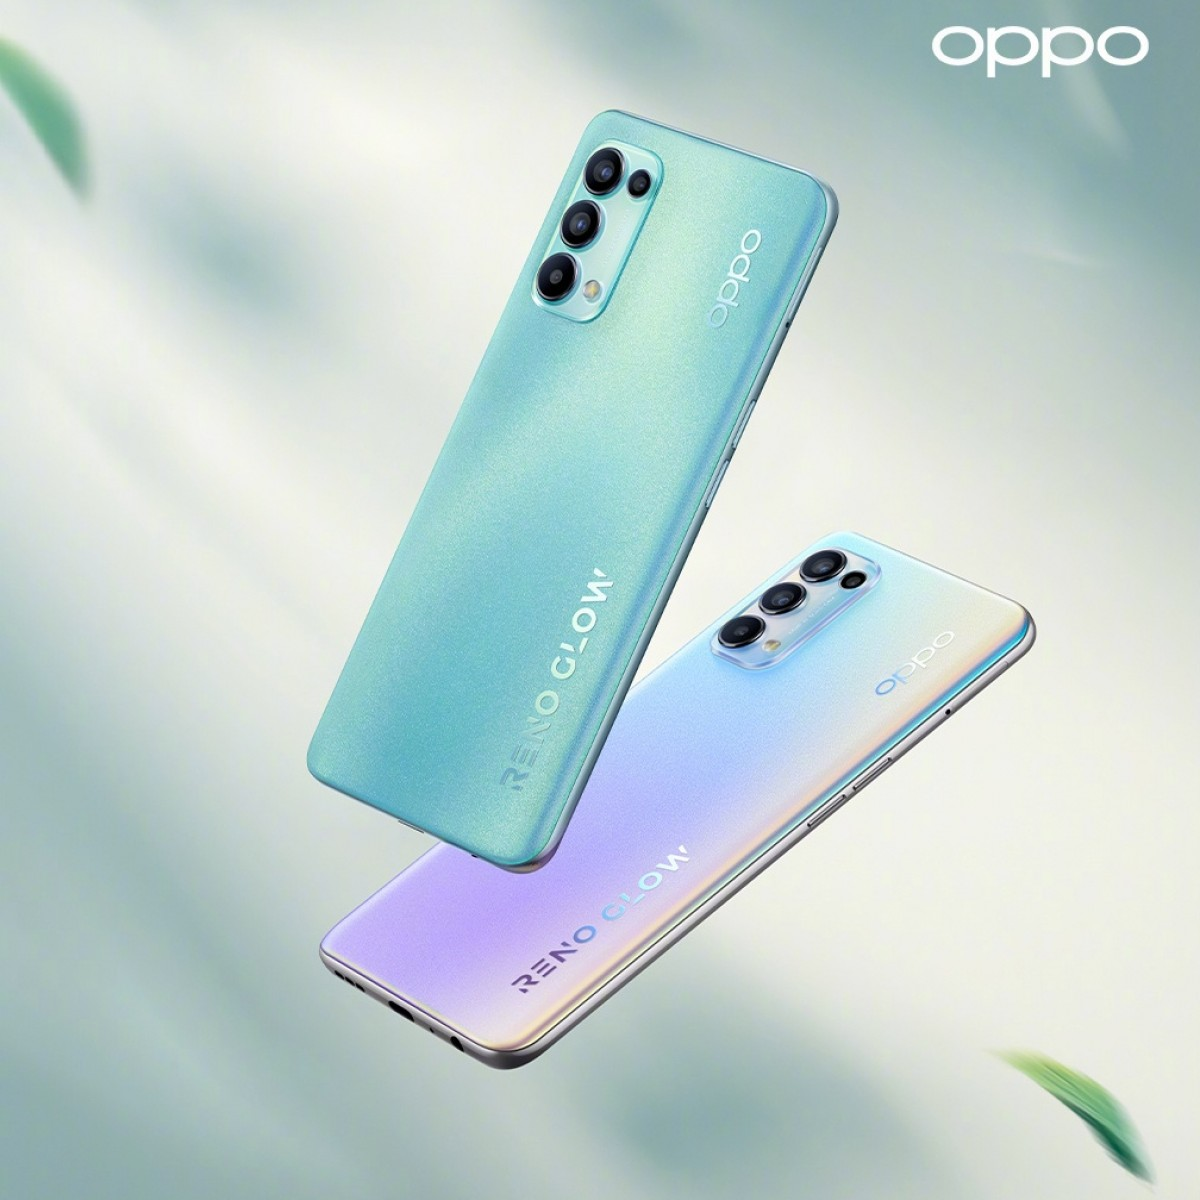 Oppo Reno5 K officially confirmed, to arrive on February 25